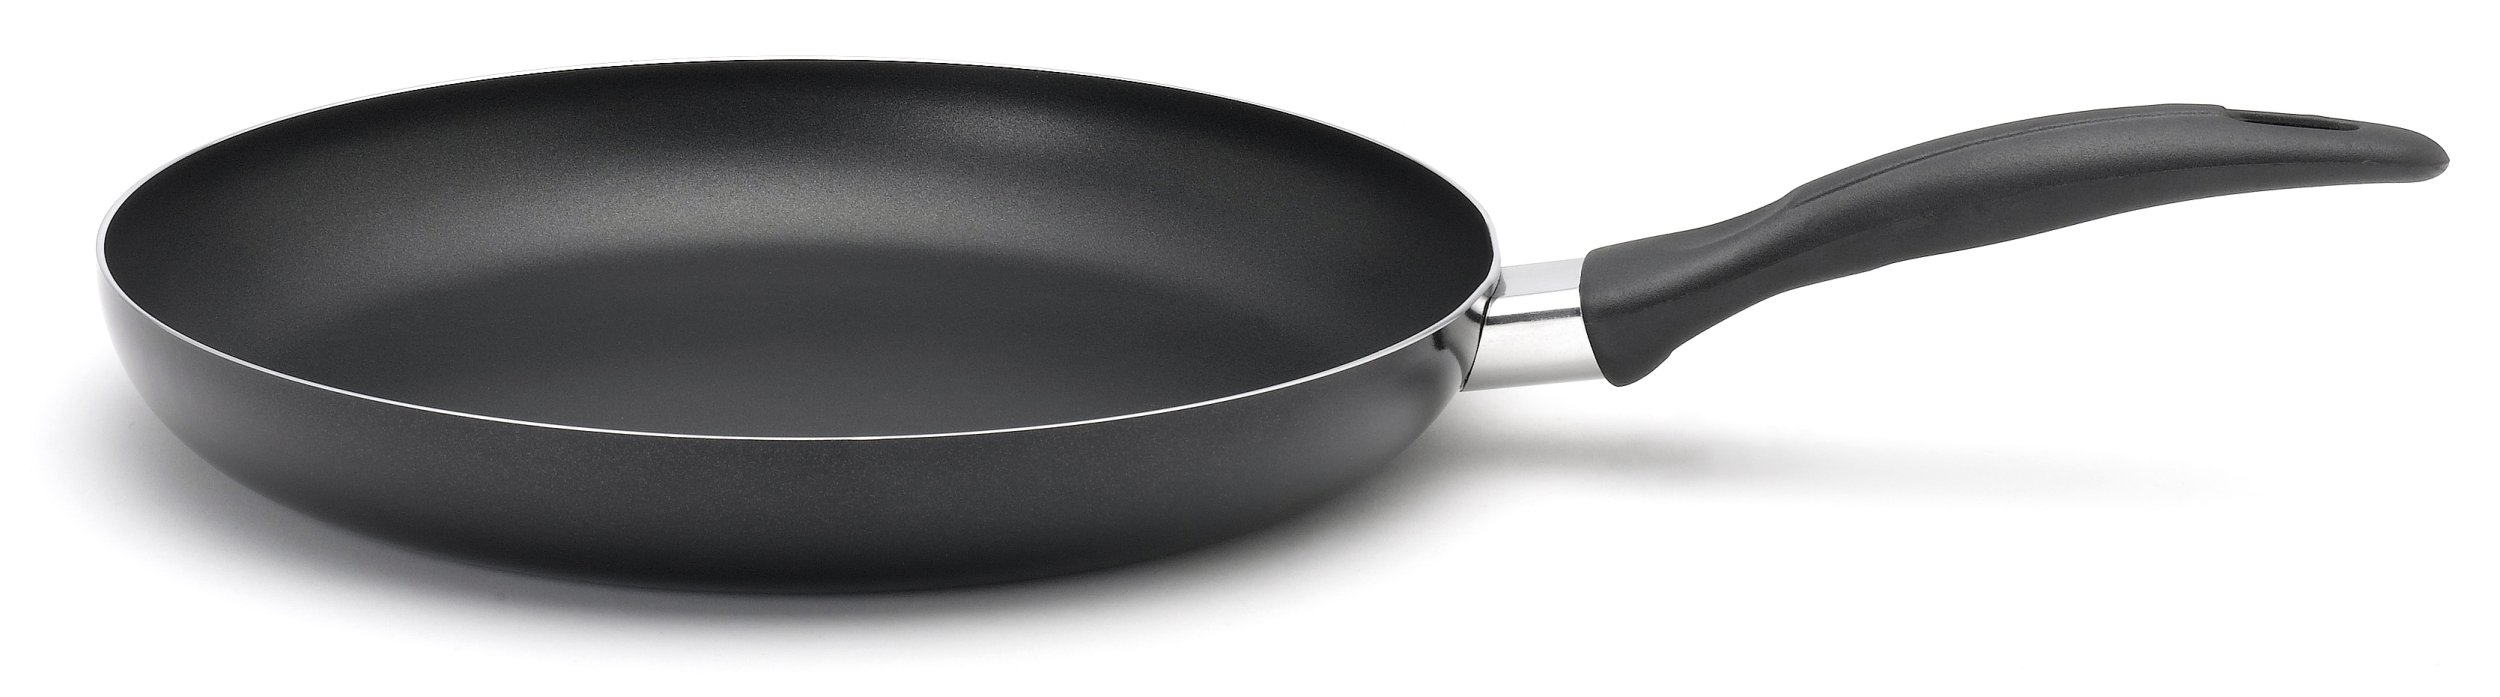 Imusa Chef Saute Pan with Non Stick, 11 Inch by Imusa (Image #2)